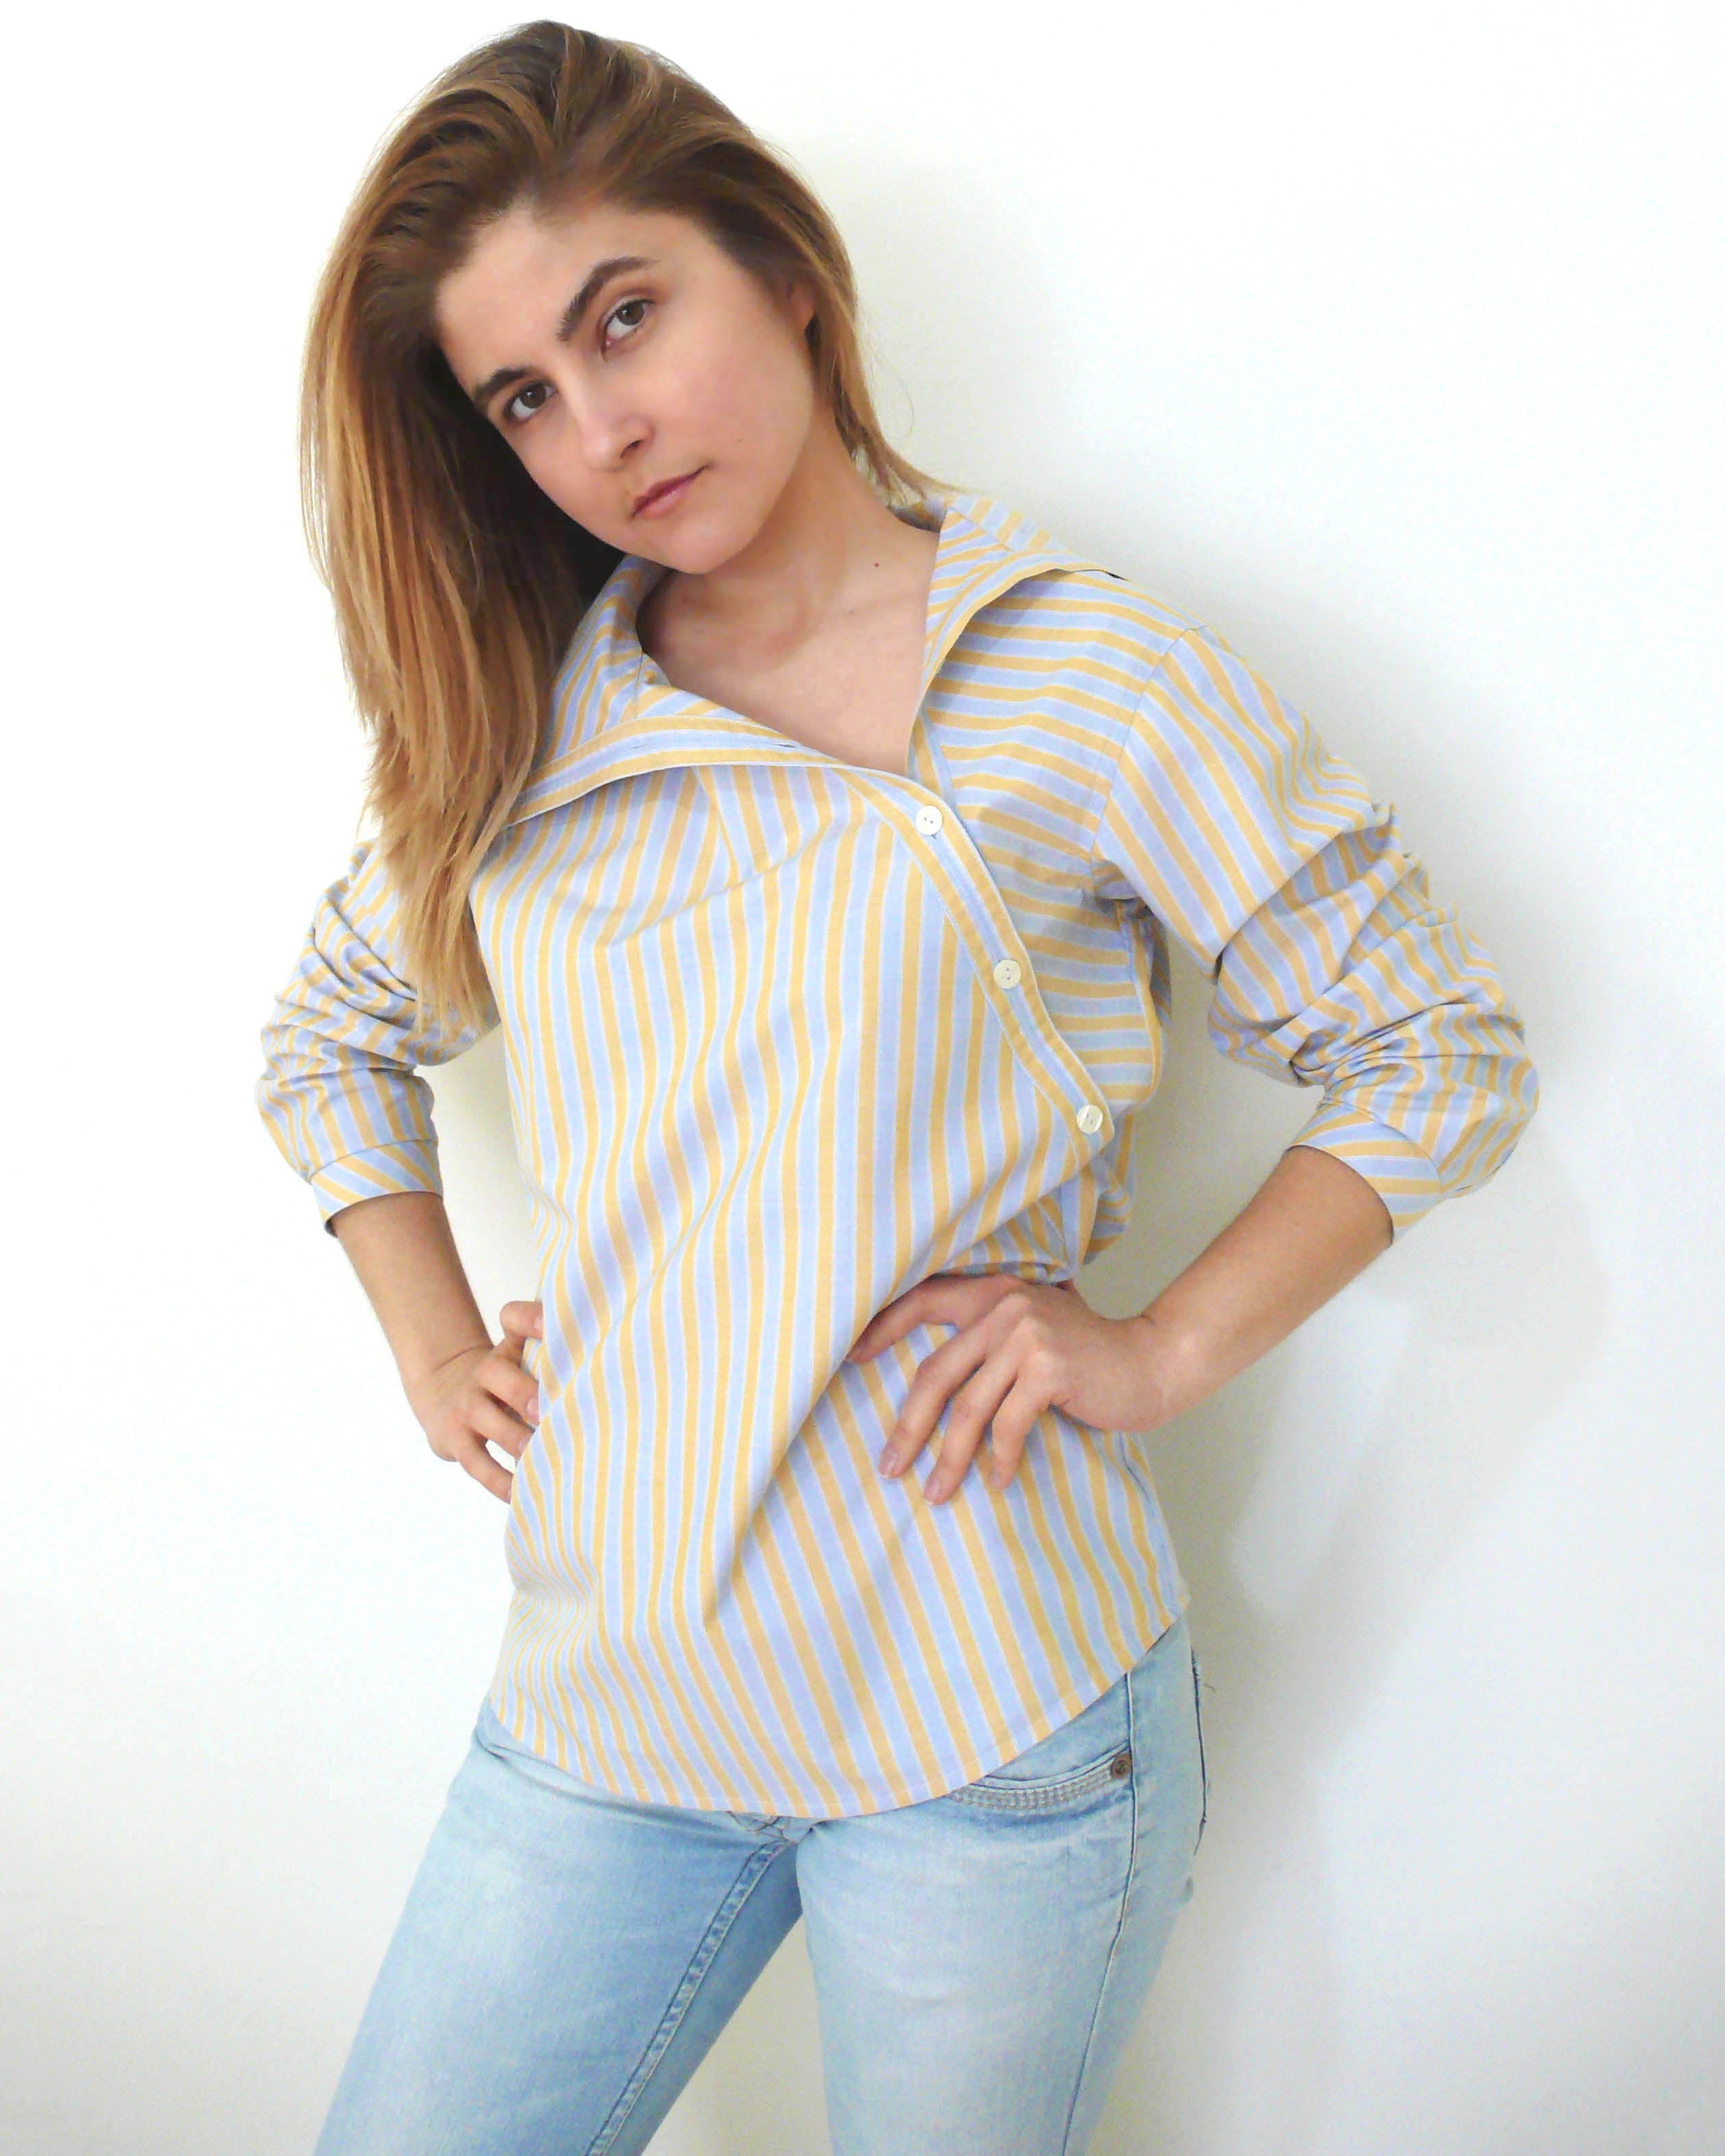 Digital Sewing Pattern N.32 - Shirt with Asymmetric Collar